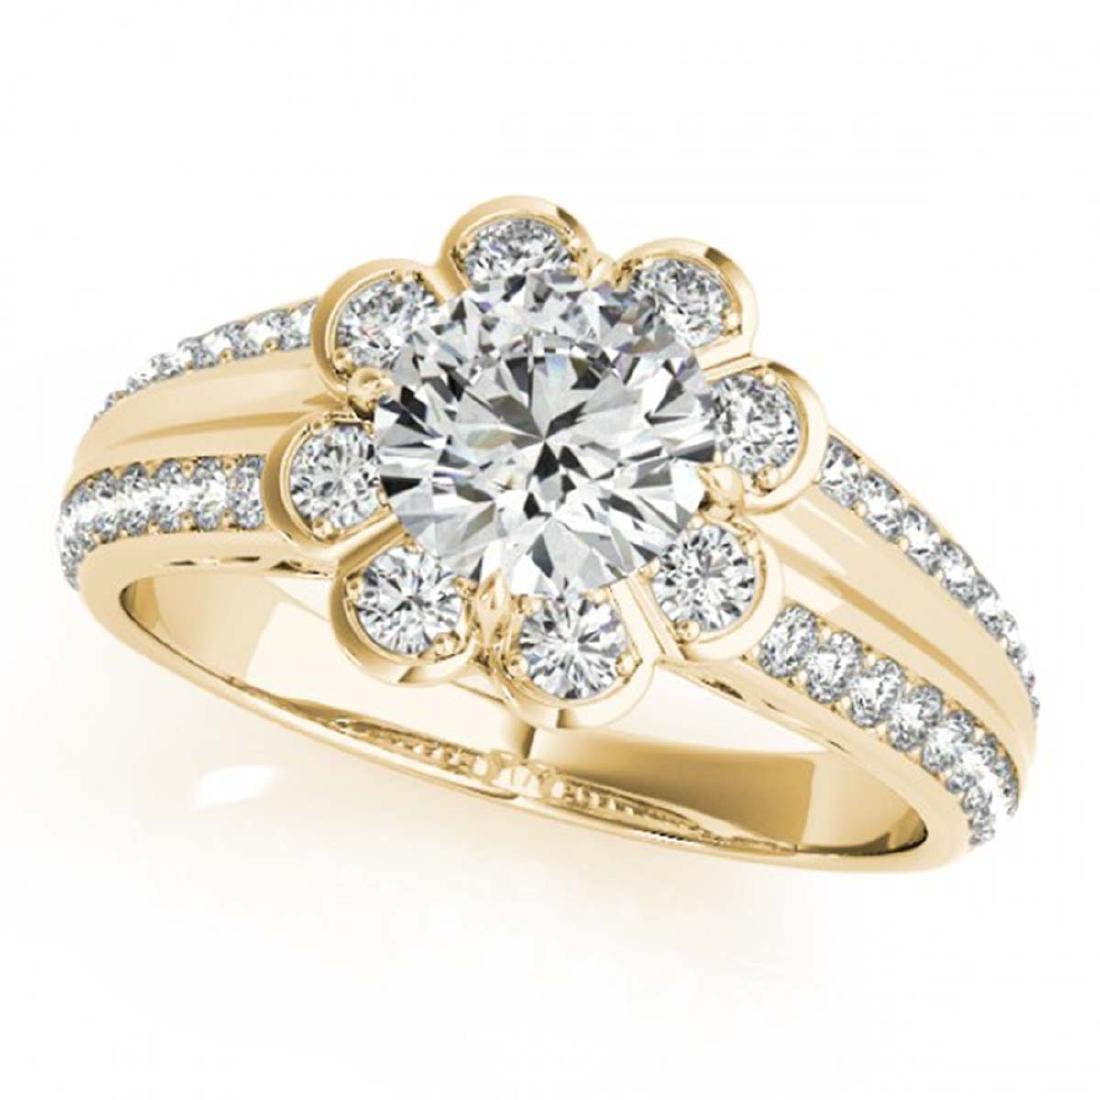 1.50 ctw VS/SI Diamond Halo Ring 18K Yellow Gold -